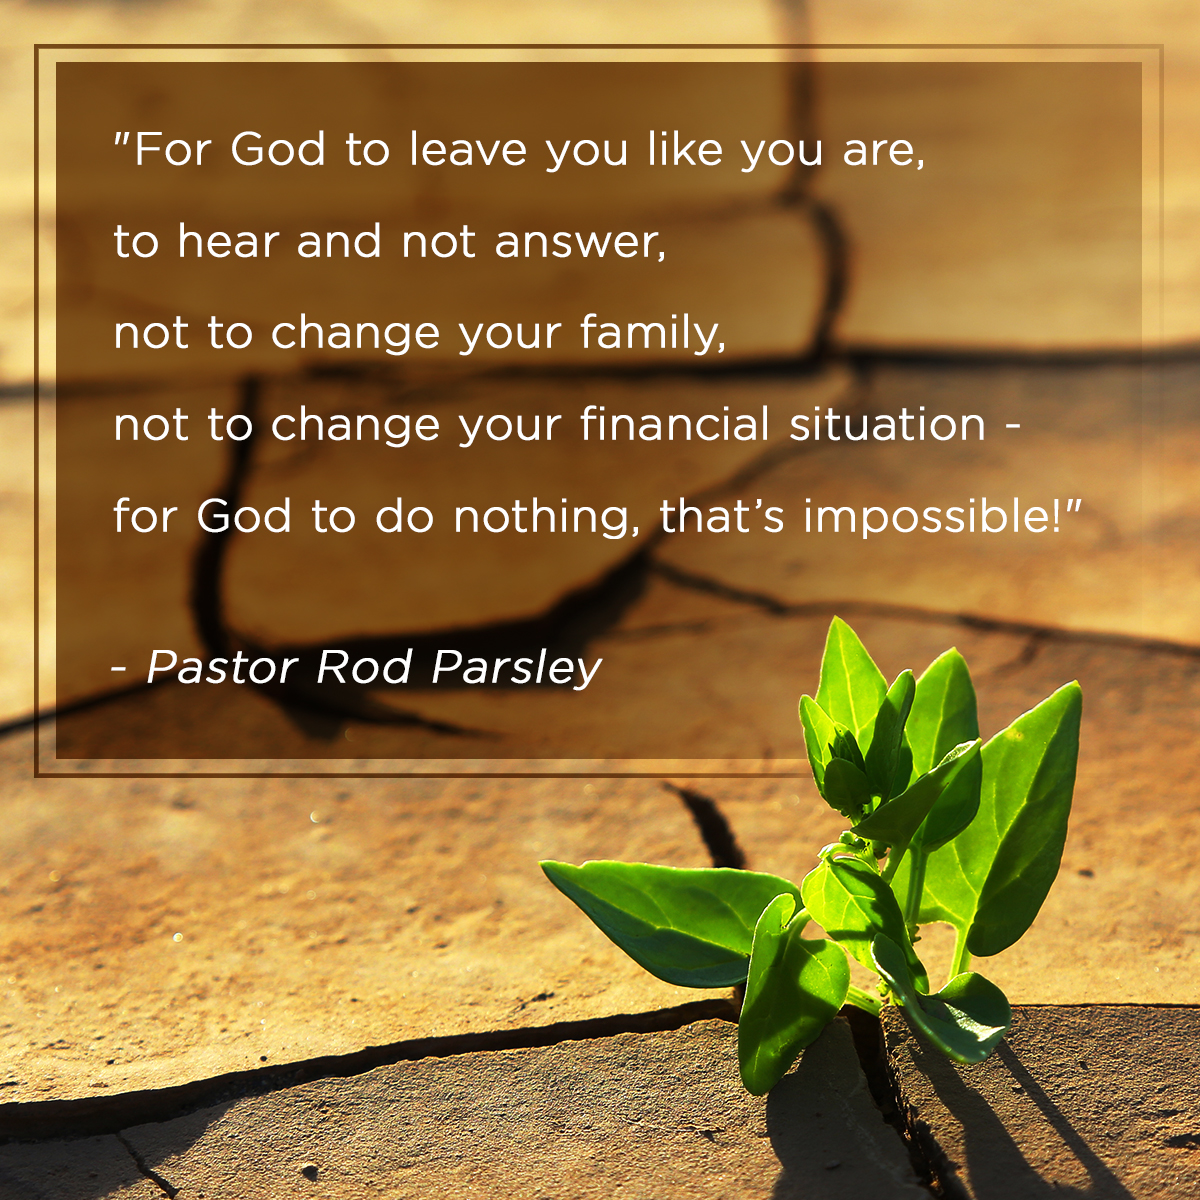 """For God to leave you like you are, to hear and not answer, not to change your family, not to change your financial situation - for God to do nothing, that's impossible!"" – Pastor Rod Parsley"